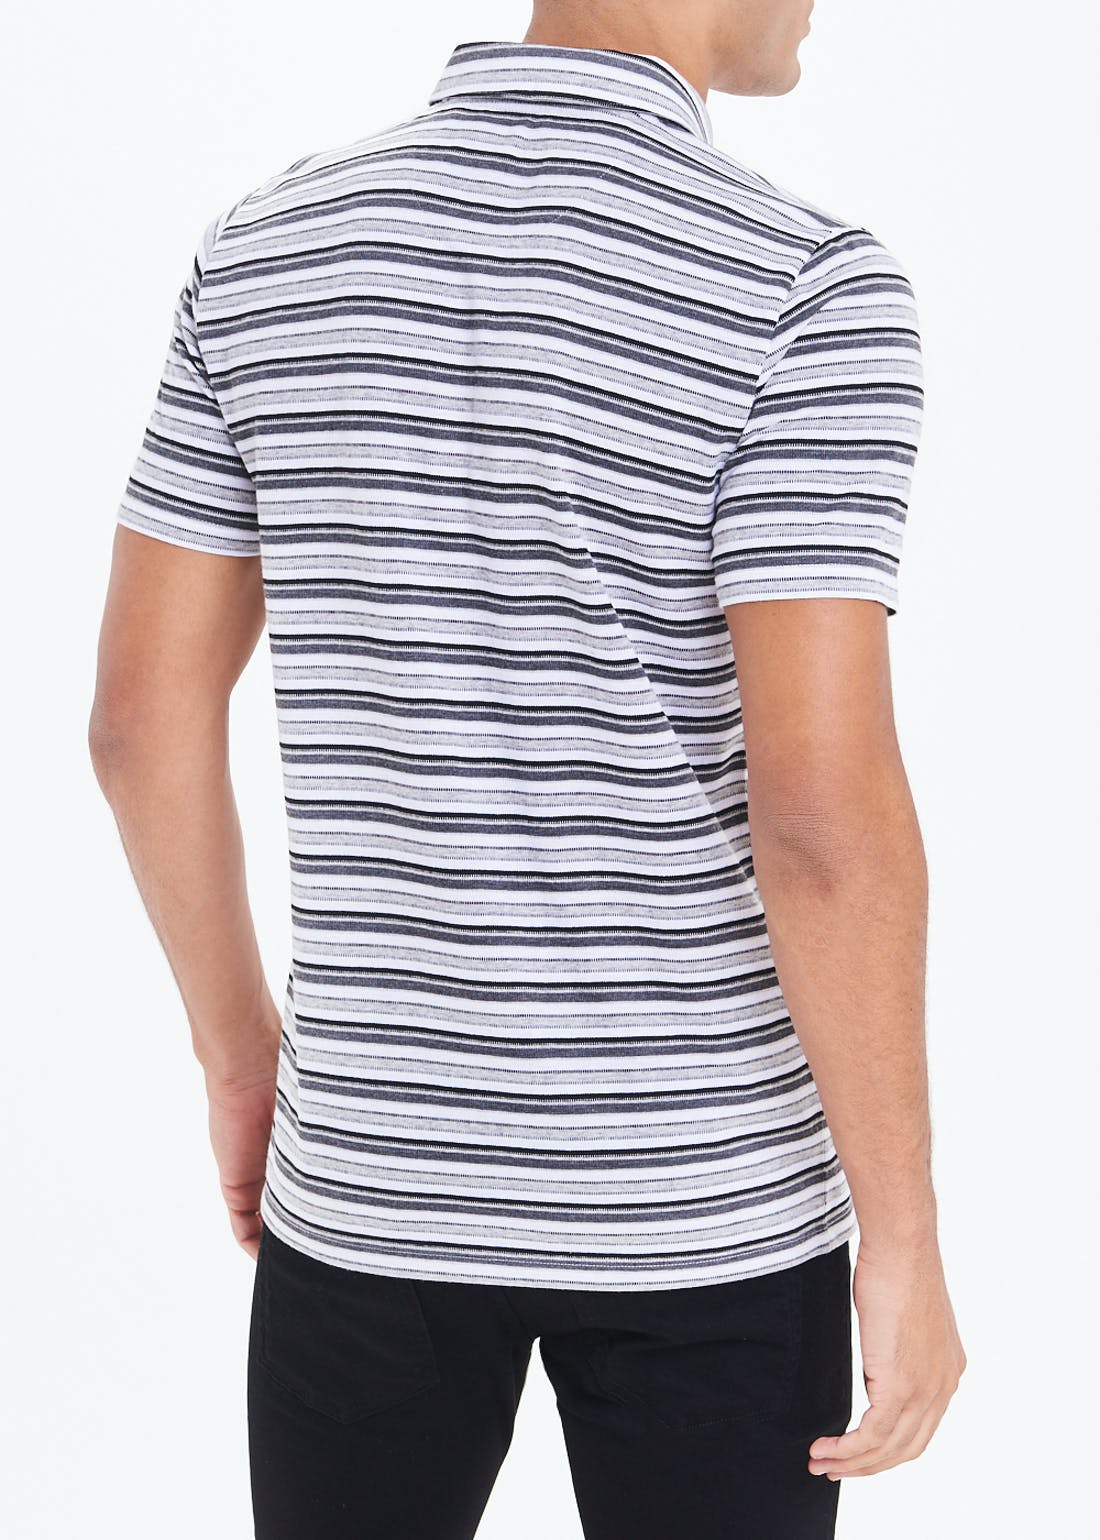 Jacquard Stripe Polo Shirt